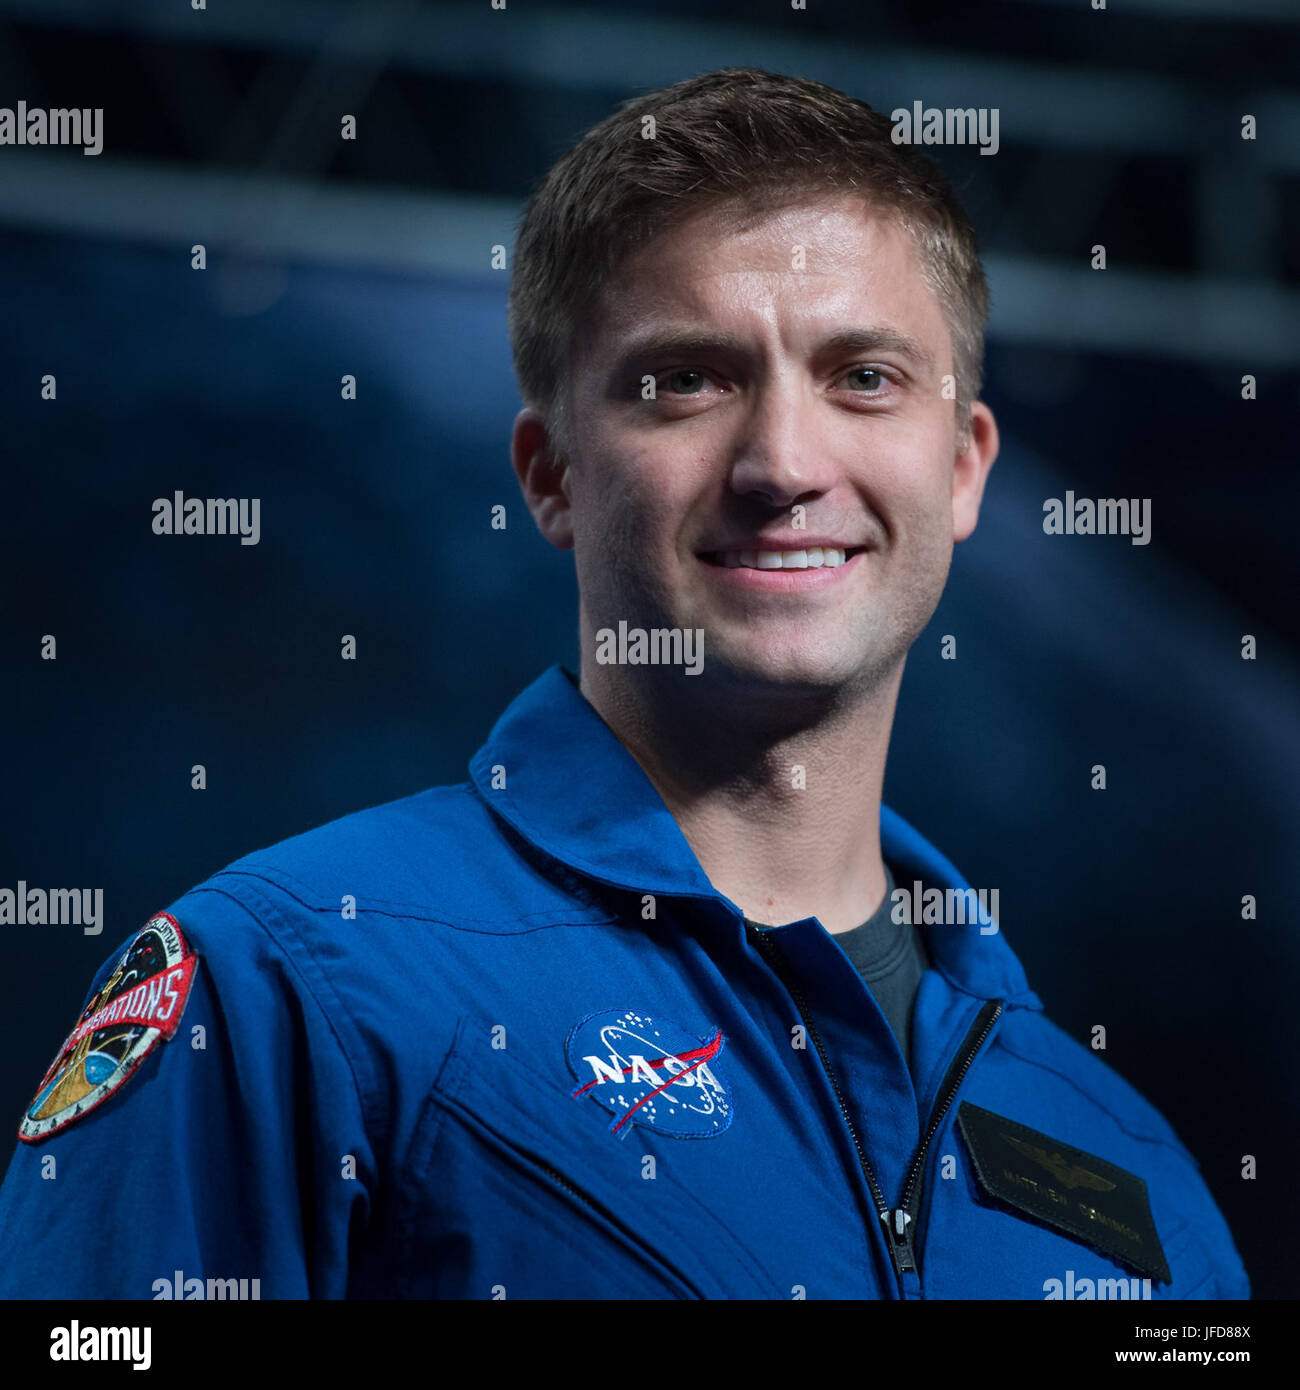 35-year-old NASA astronaut candidate Matthew Dominic smiles as he is introduced as one of 12 new candidates, Wednesday, - Stock Image